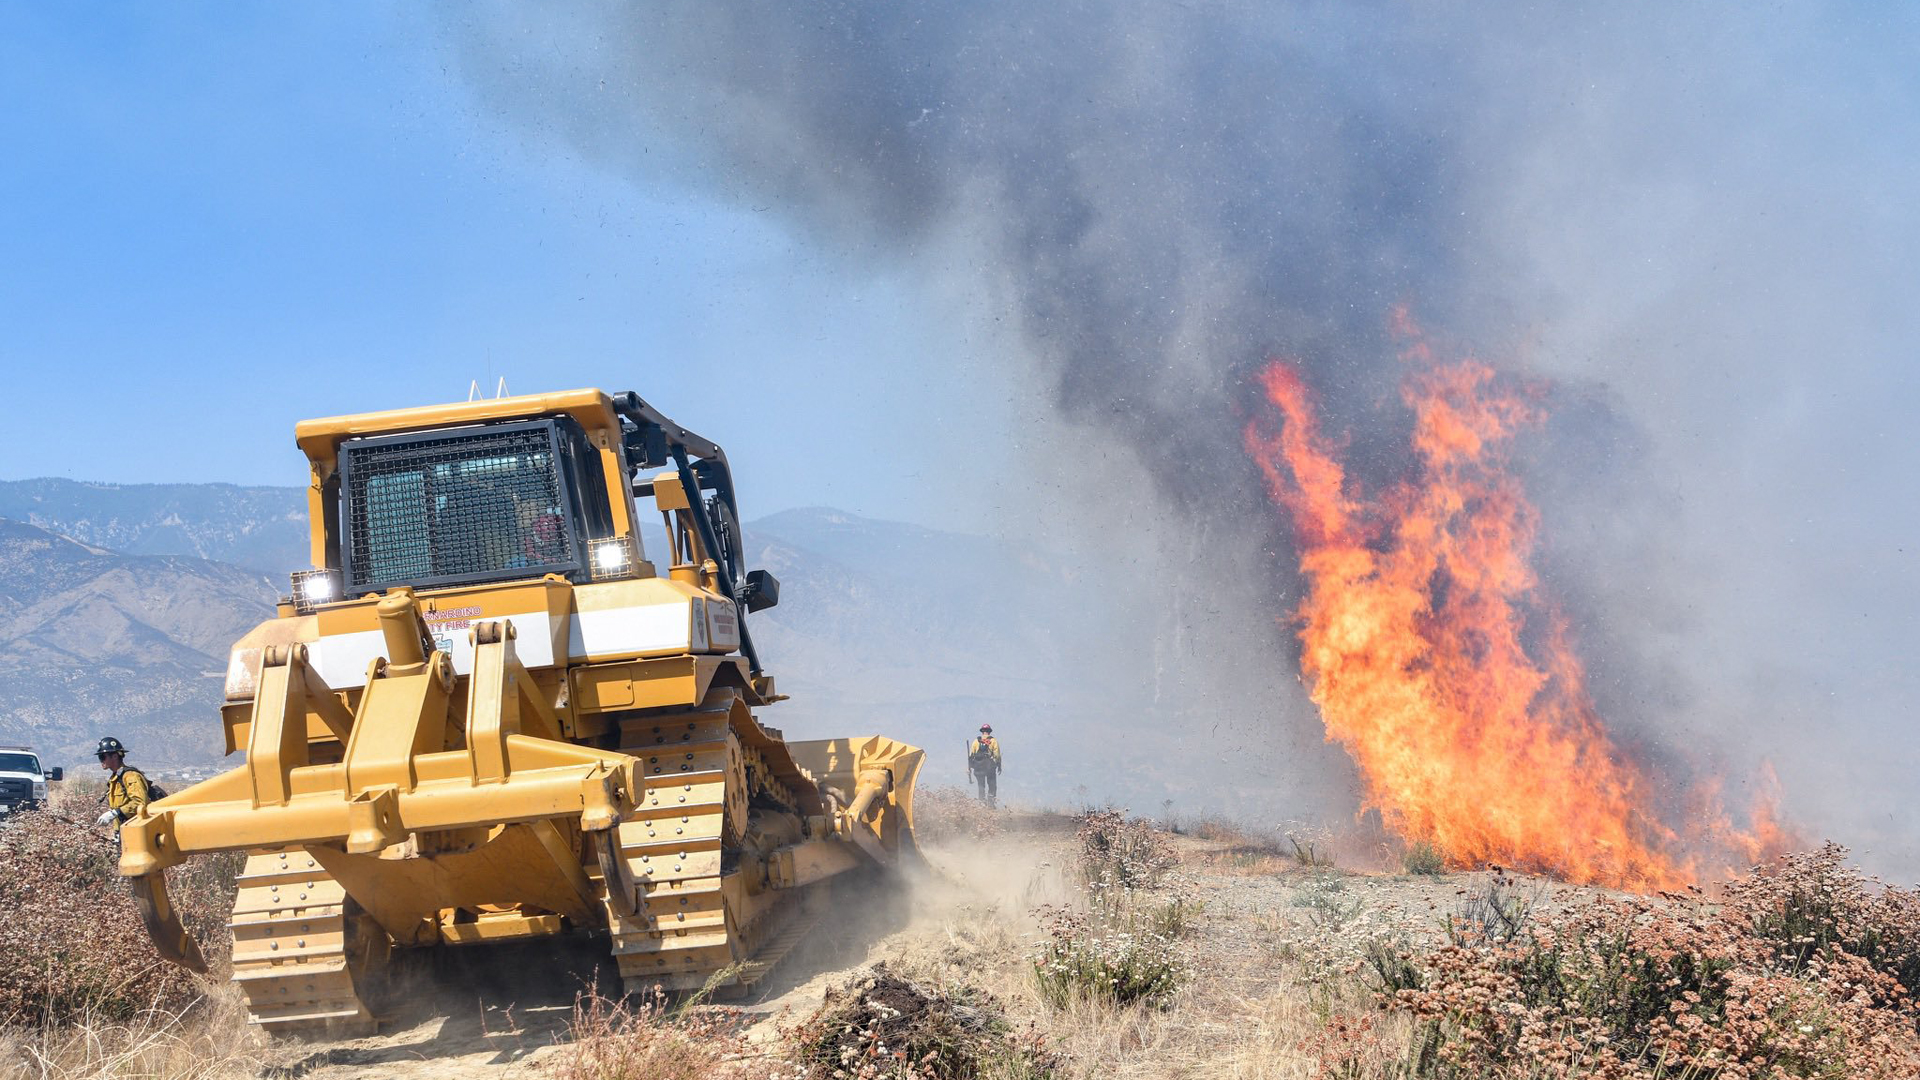 Crews use a bulldozer as they battle a brush fire in San Bernardino on July 31, 2019, in an image released by the San Bernardino County Fire Department.